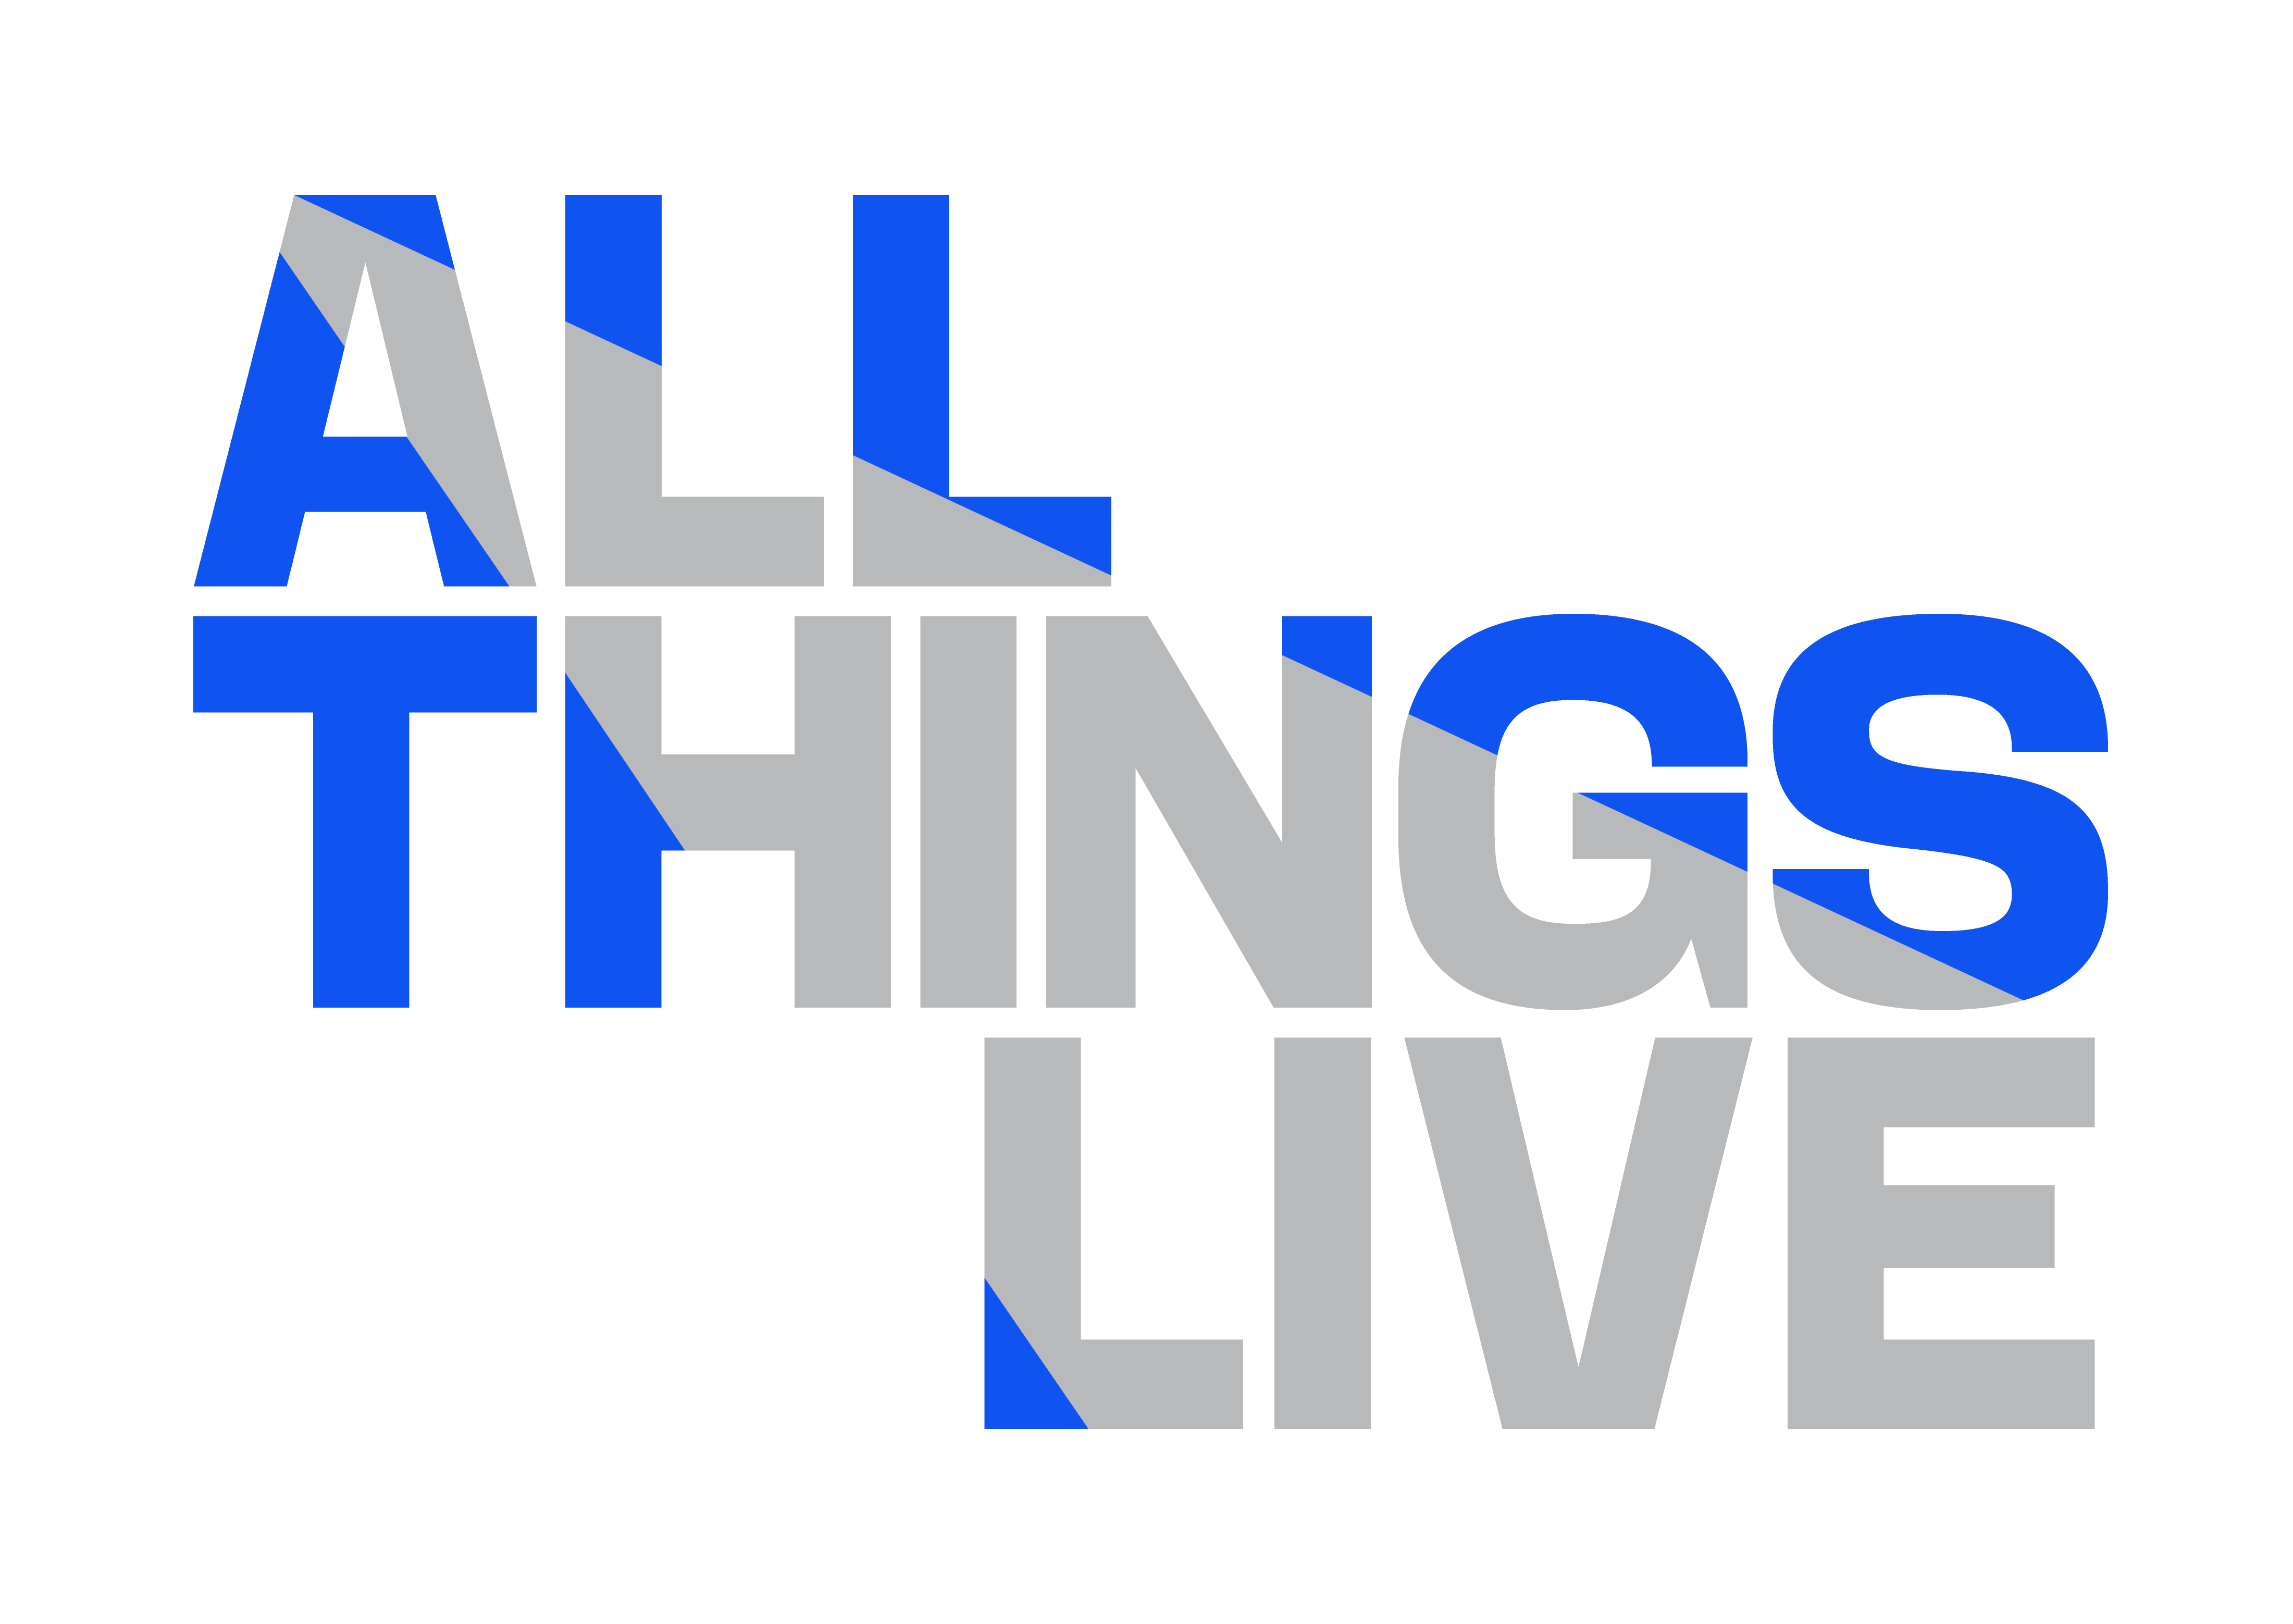 Allthingslive_Logotype_Stacked_RGB_Color_INVERTED-01